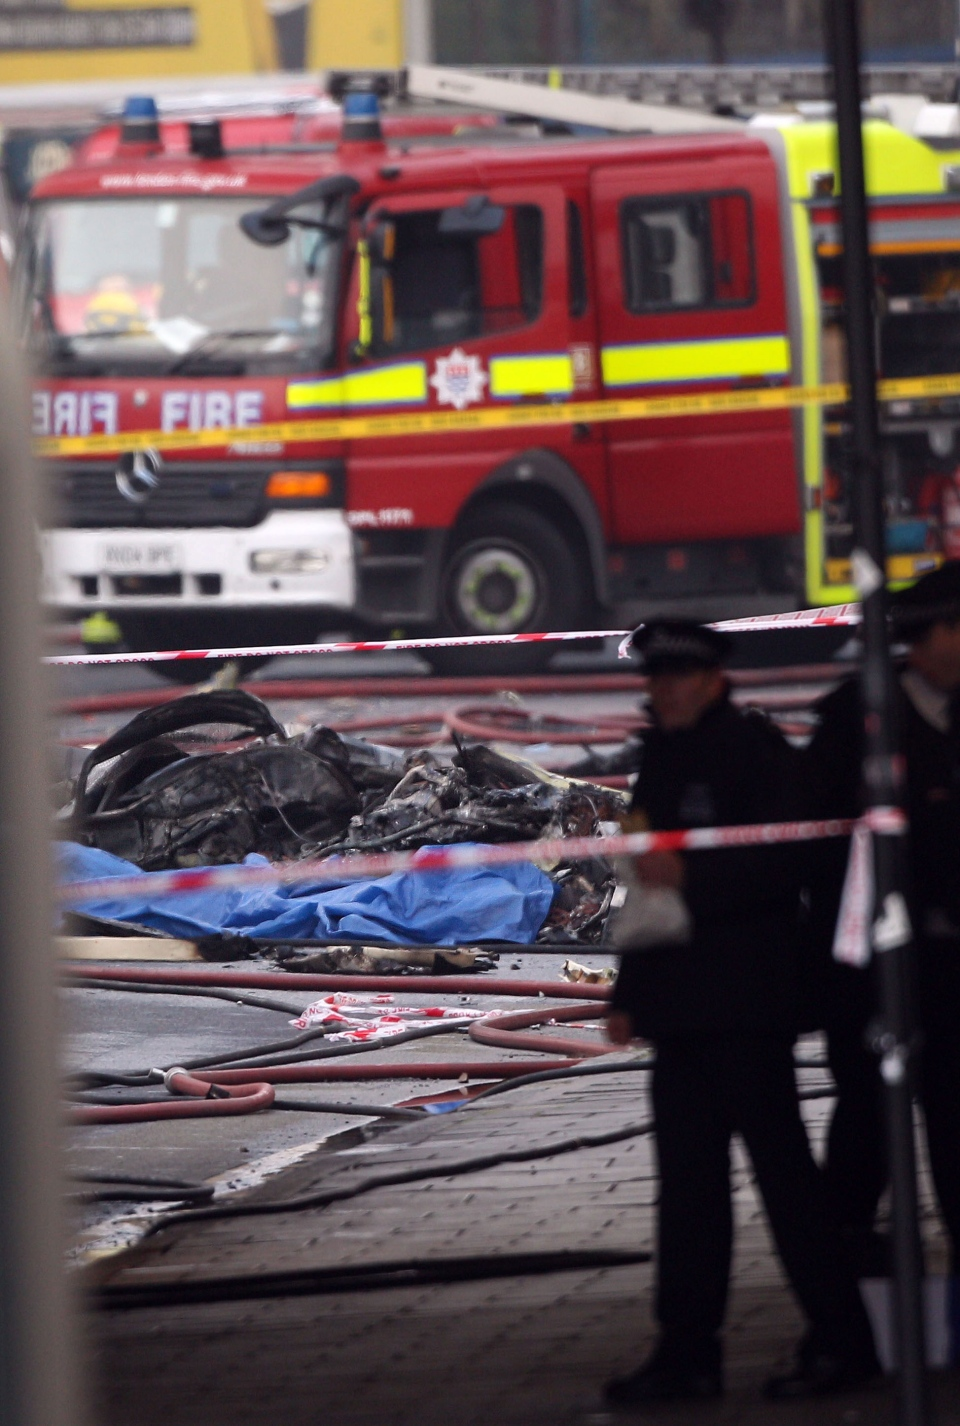 Debris lies on the ground after a helicopter crashed into a construction crane on top of St George's Wharf tower building, in Vauxhall south London Wednesday, Jan. 16, 2013. (Lewis Whyld / PA)